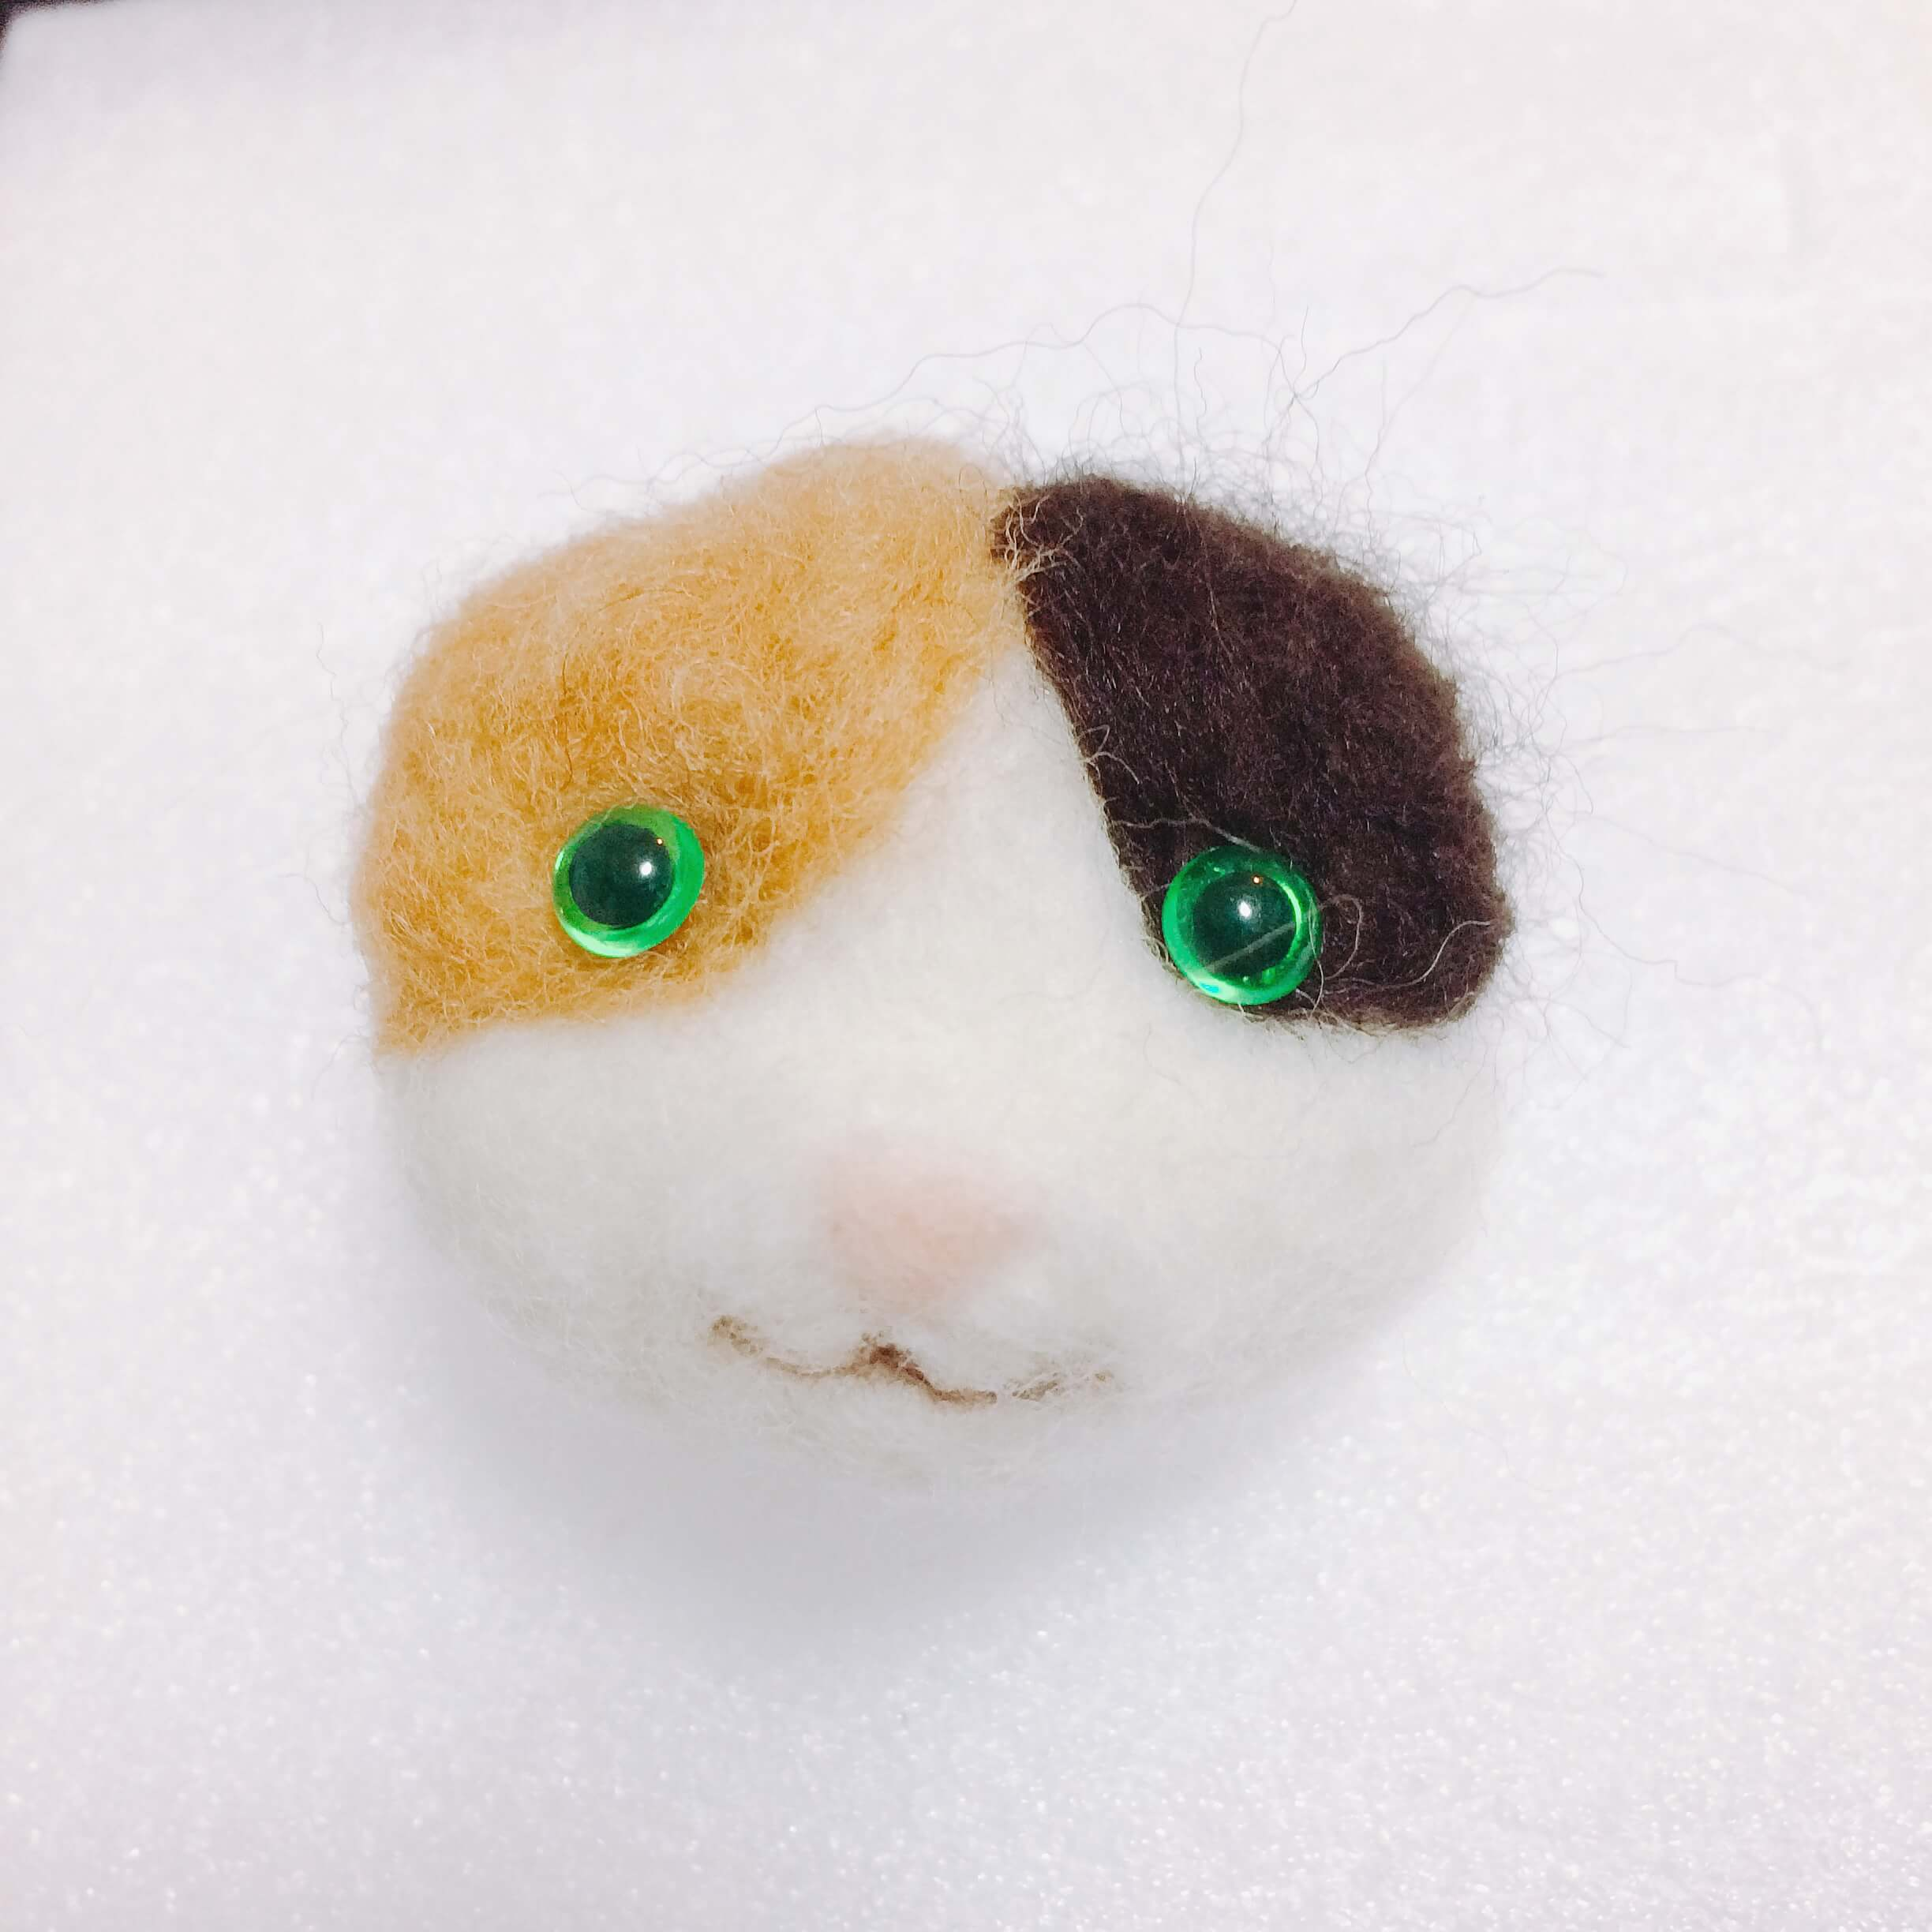 Japanese needle felting